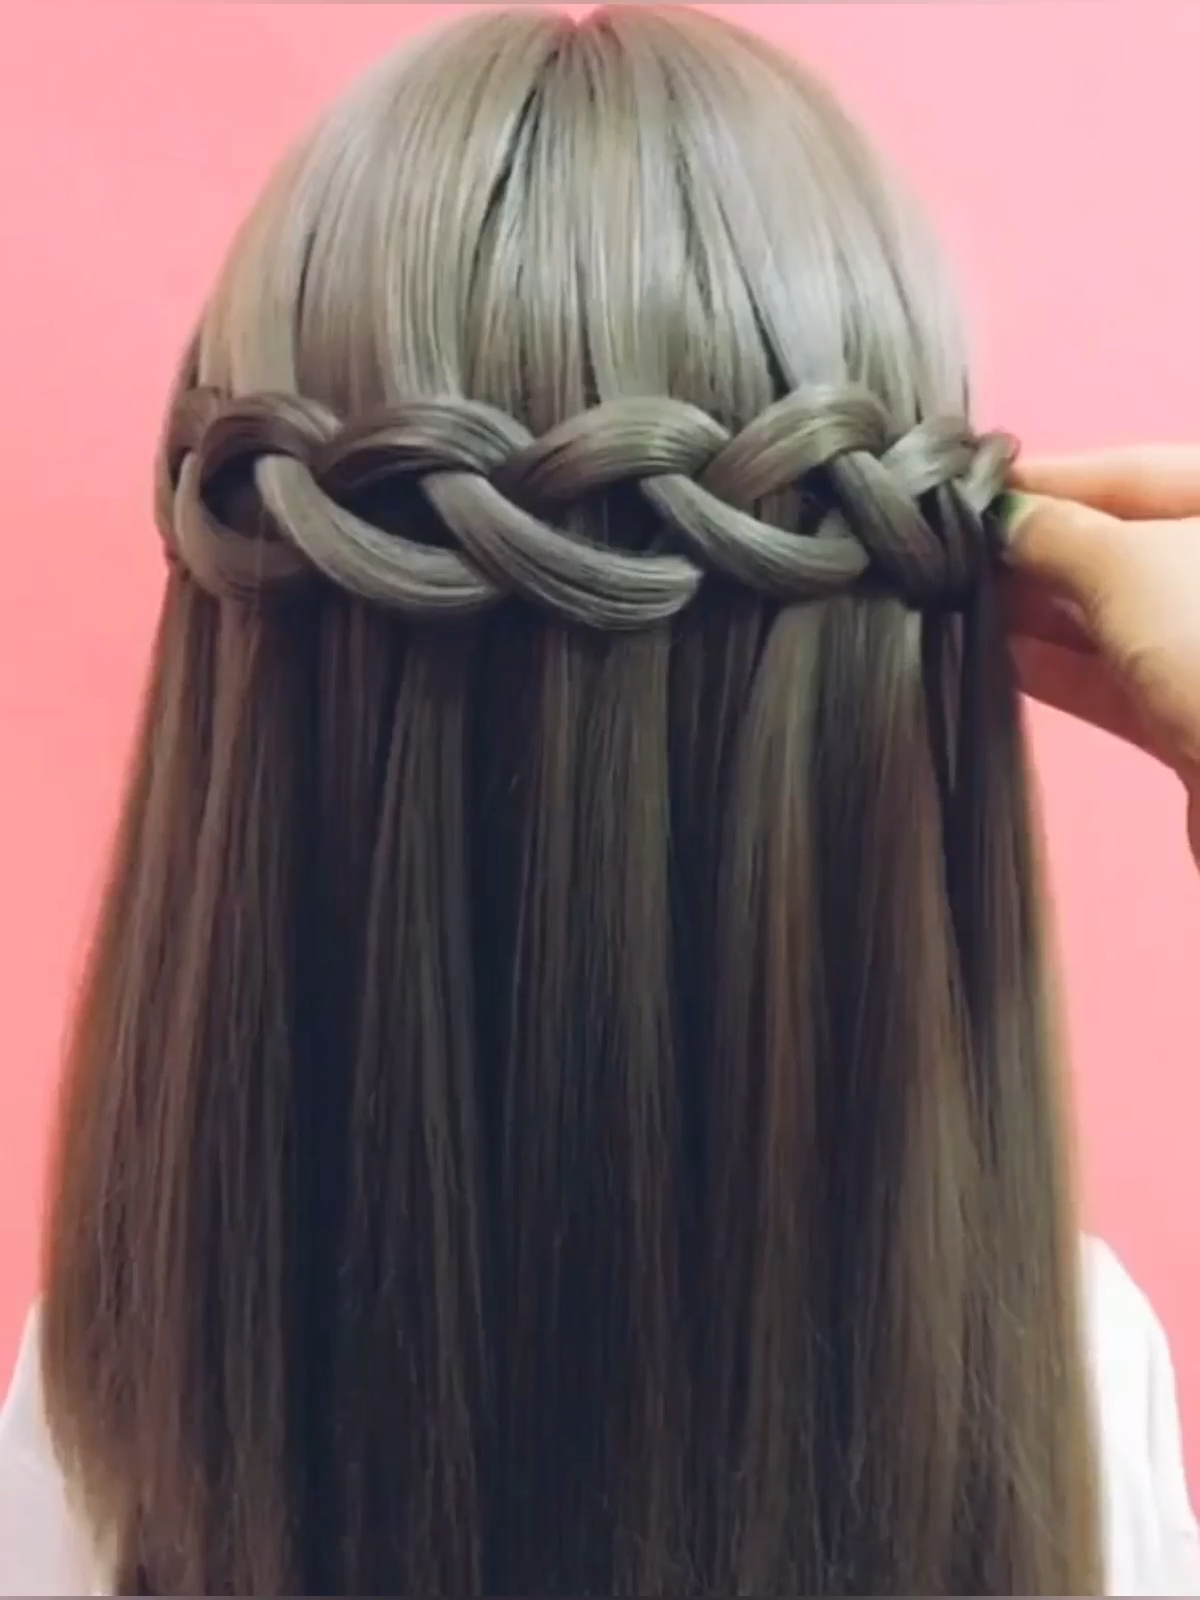 25+ cute and easy hairstyles | braided hairstyles | hair tutorials videos -   24 hairstyles Videos women ideas